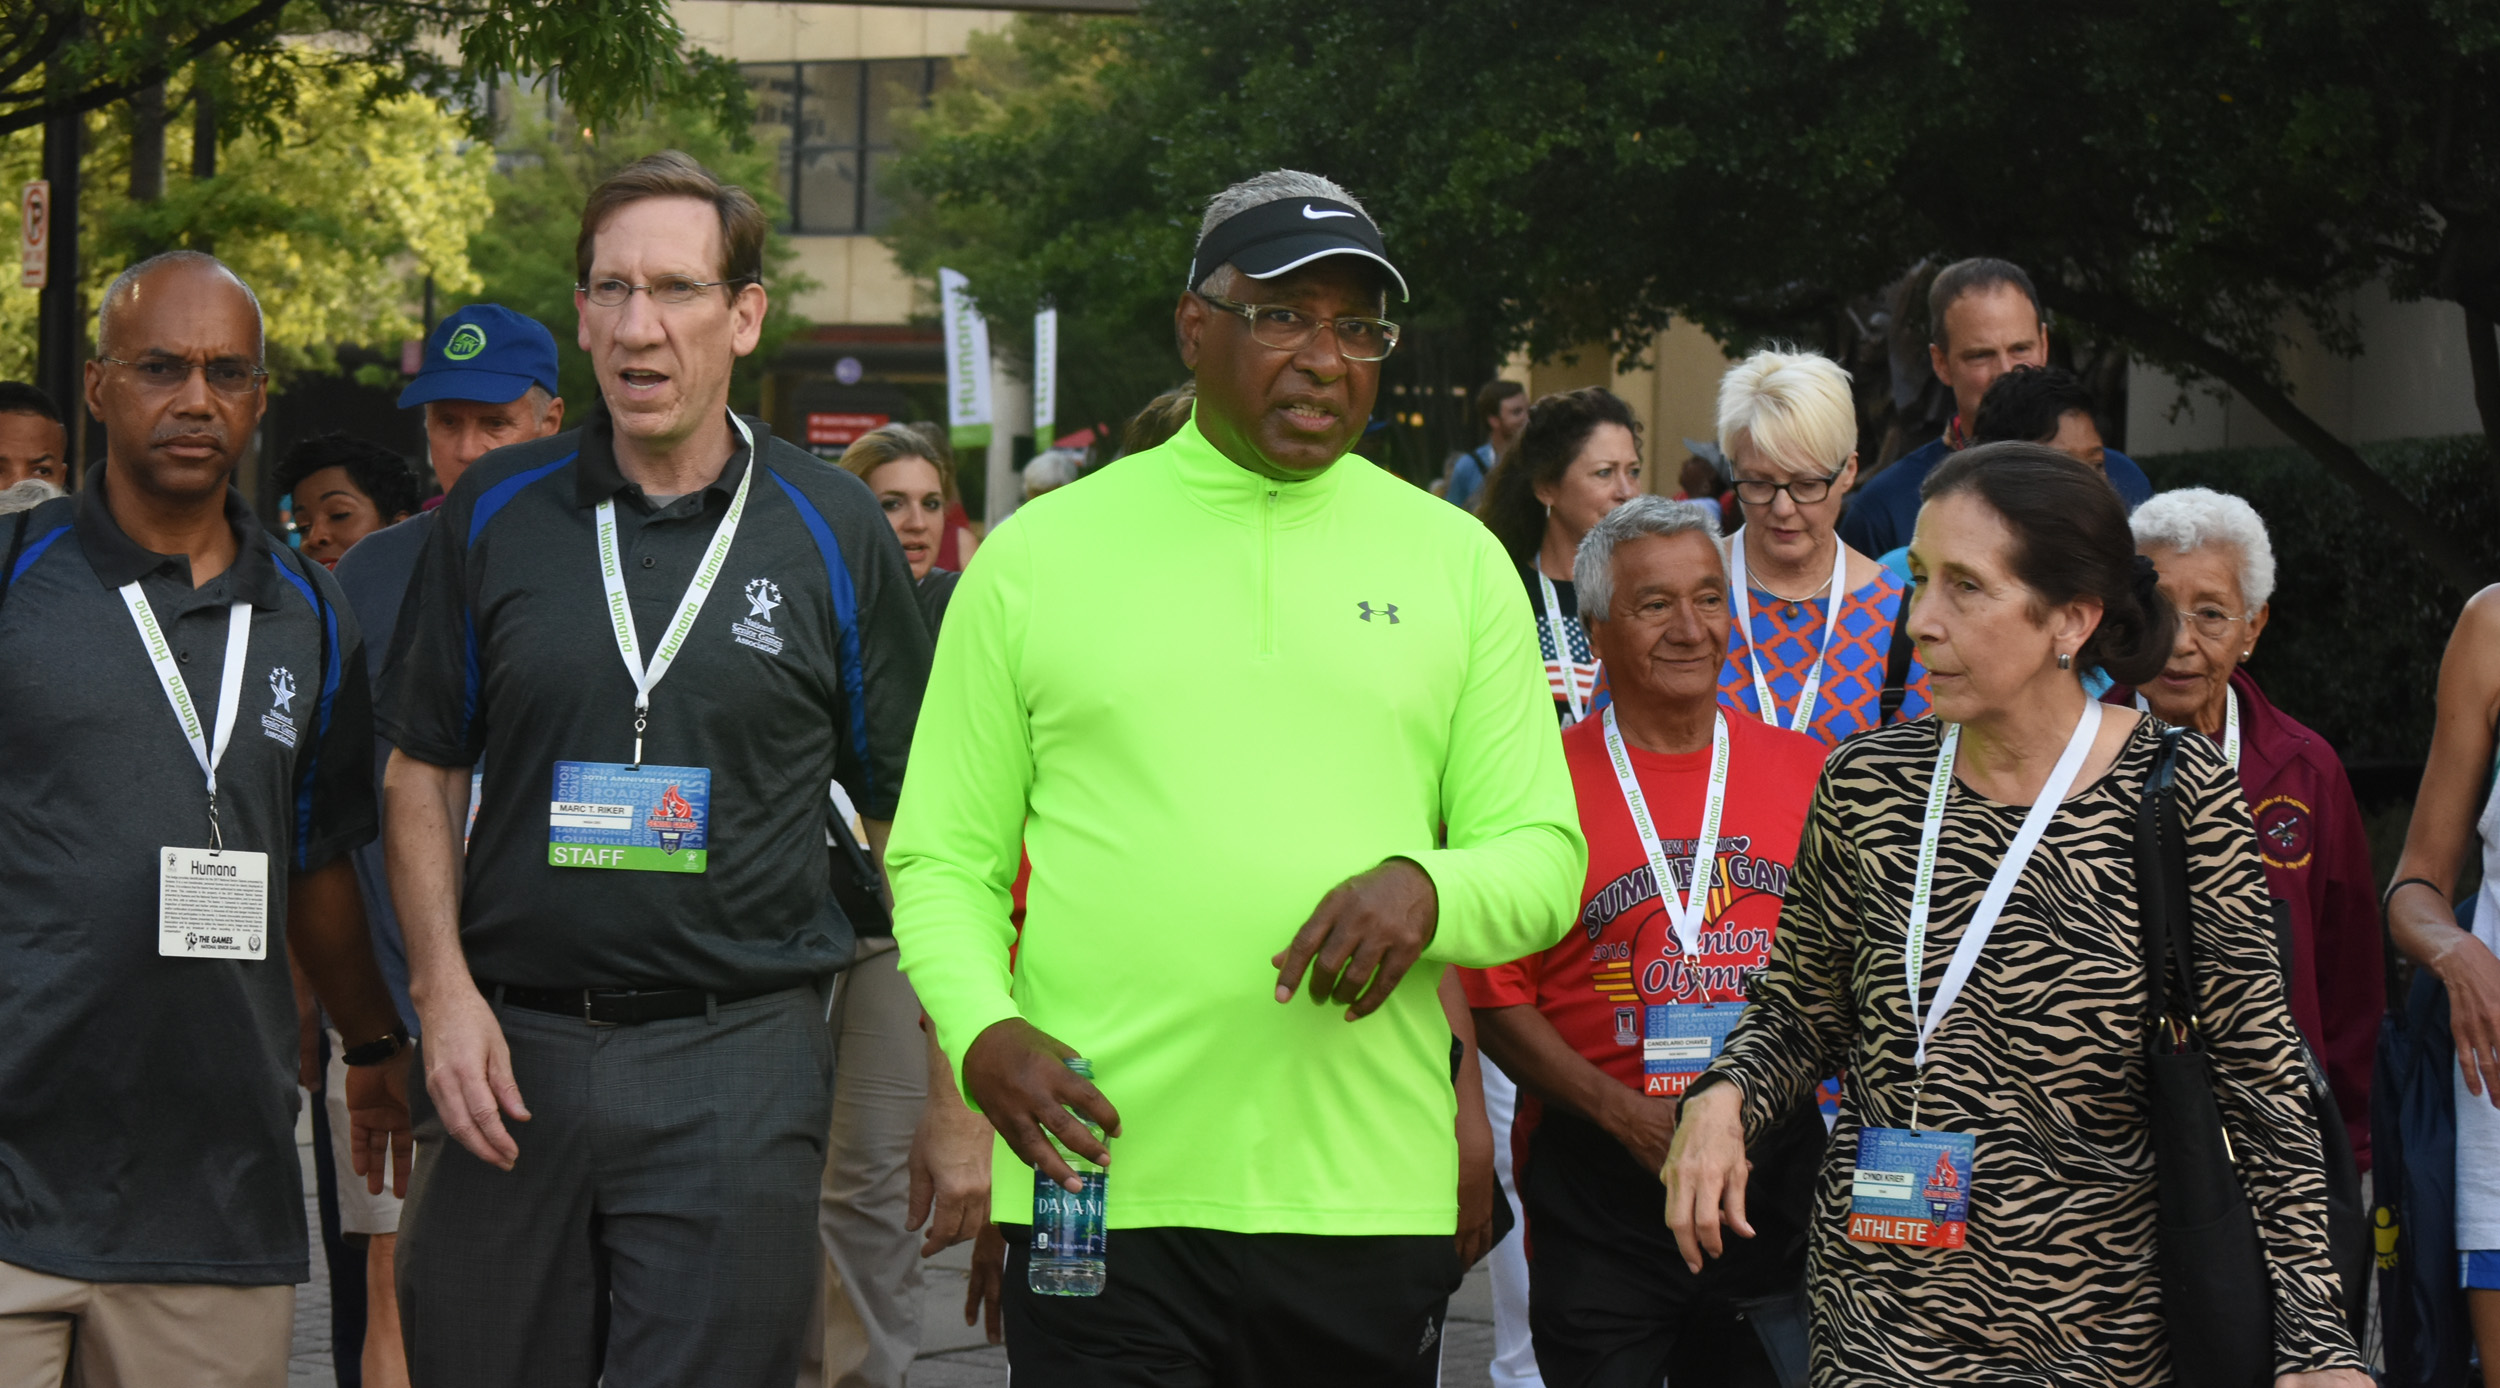 Birmingham Mayor William Bell and officials with the 2017 National Senior Games lead athletes during the Mayor's Walk at the opening ceremonies in downtown Birmingham. (Solomon Crenshaw Jr./For The Birmingham Times).